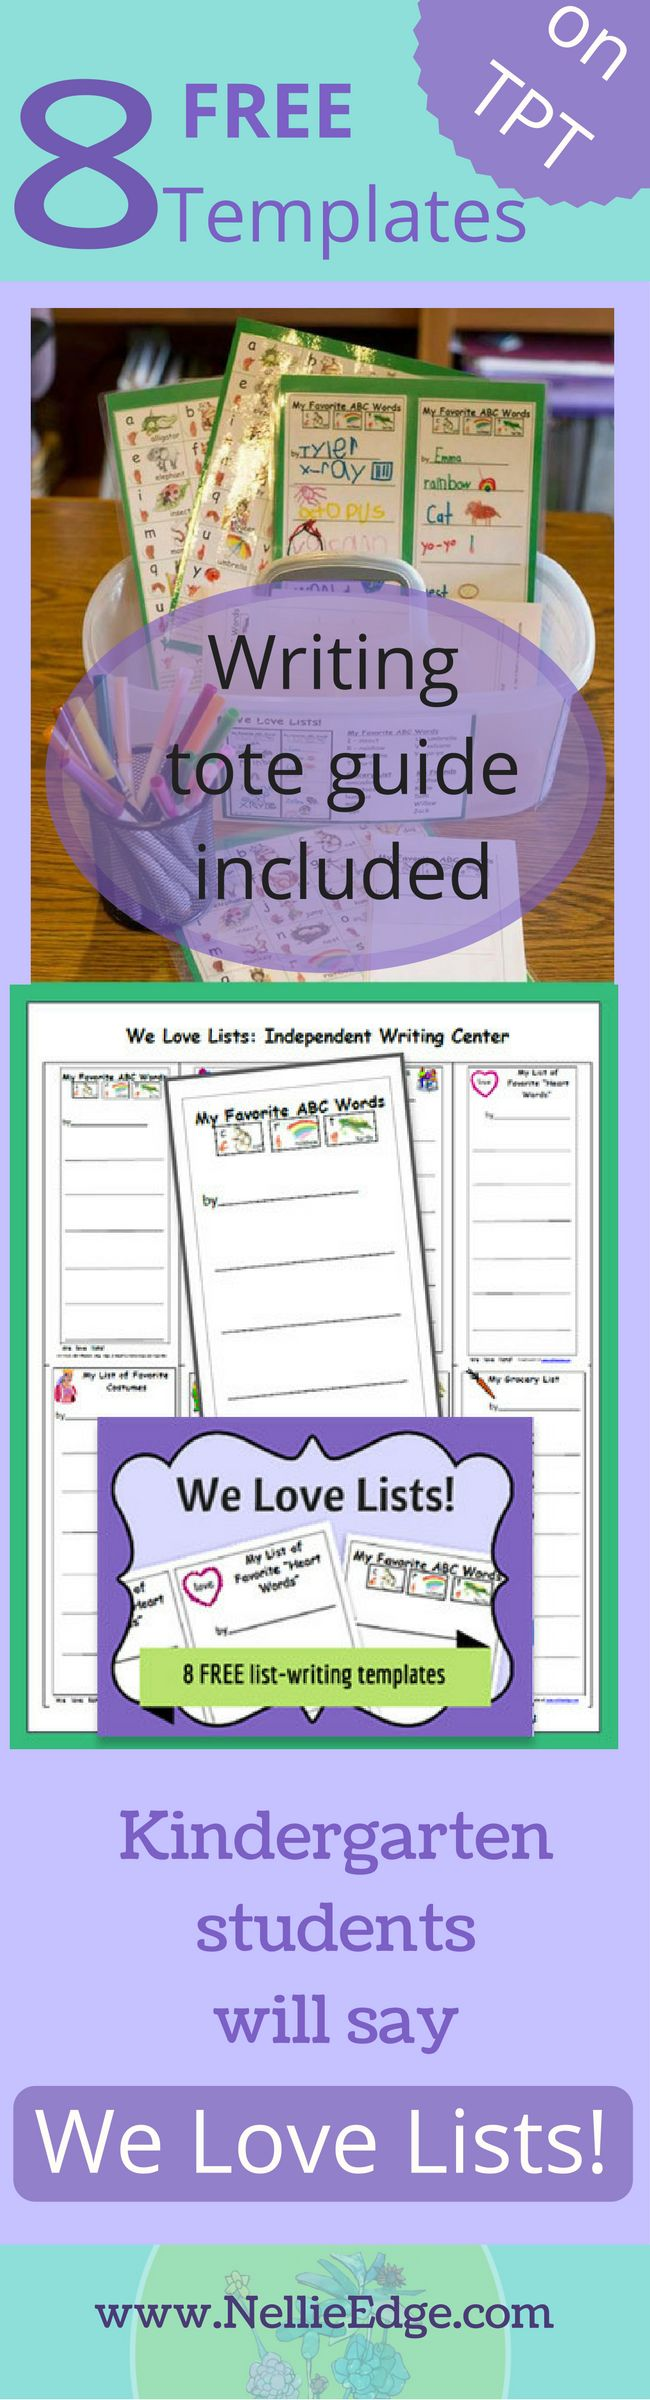 17 best ideas about kindergarten handwriting begin the year these 8 writing templates for independent writing centers templates are as